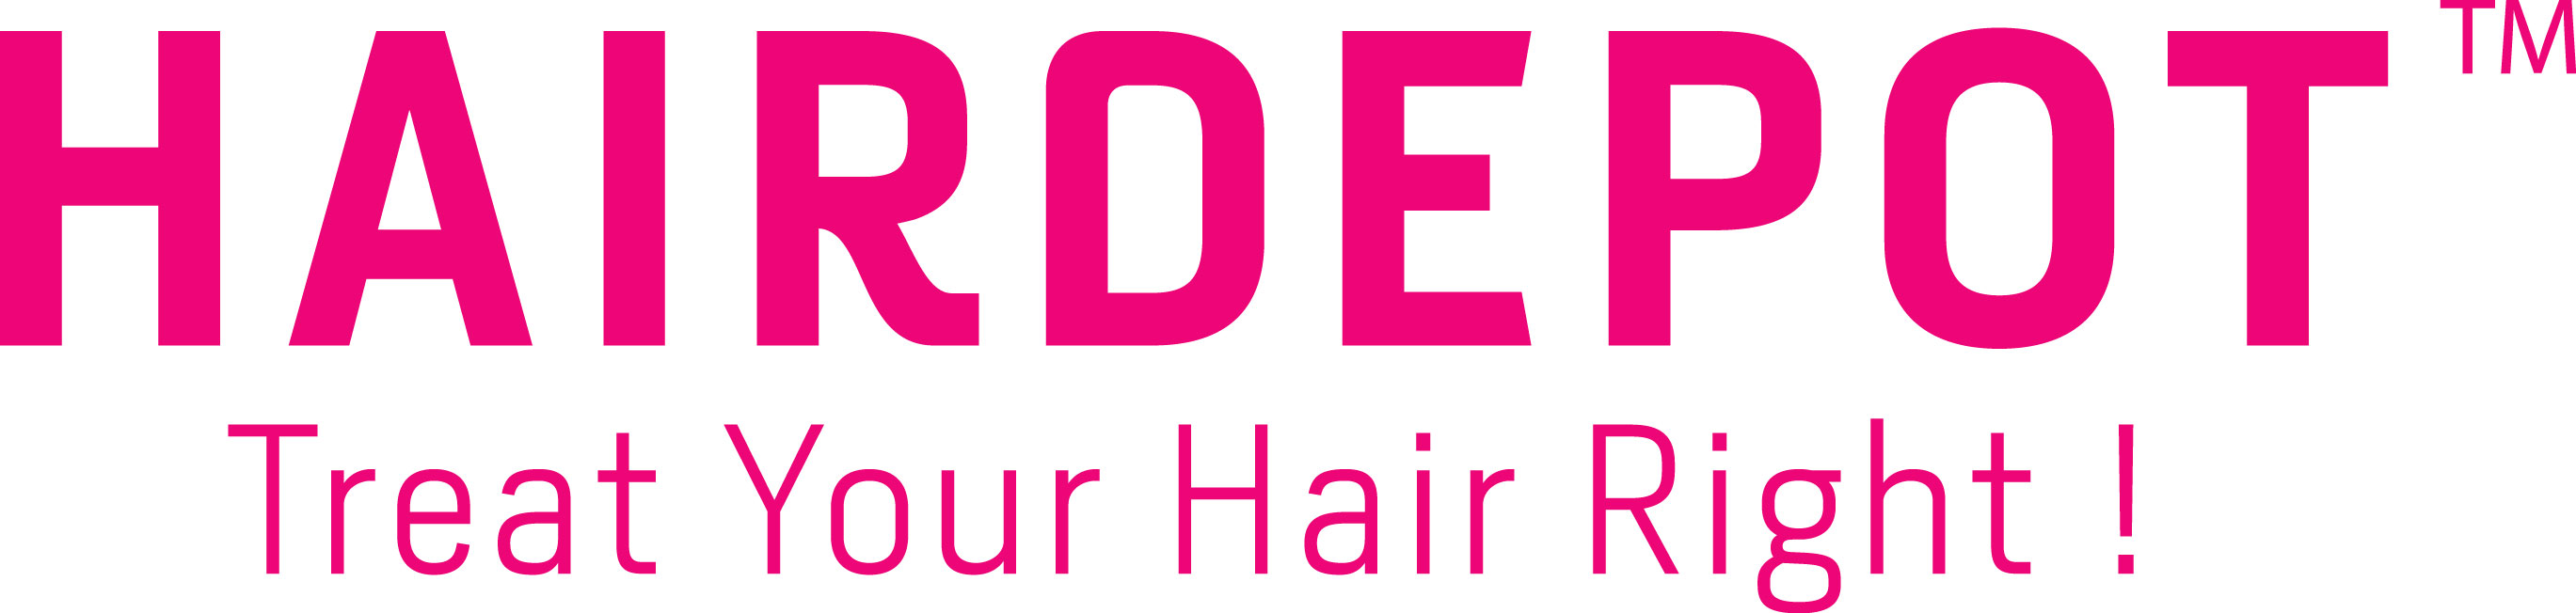 HAIRDEPOT - Hair & Scalp Care Products, Prevent Hair Loss, Shampoo, Conditioner, Treatment, Styling, Appliances and more!